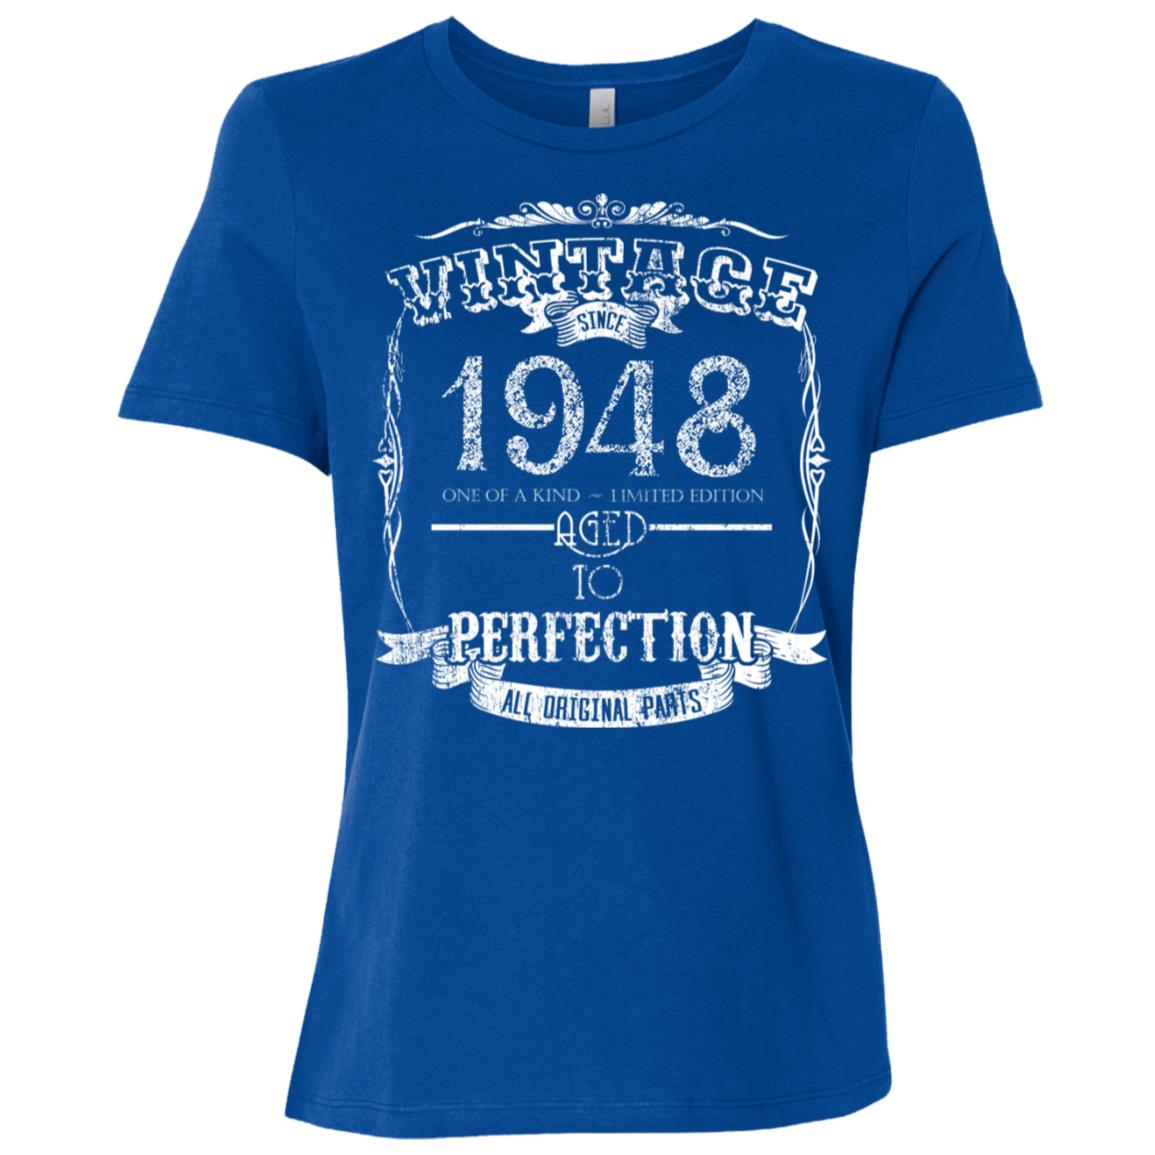 80th year old Funny Birthday Gifts 1938 Mens Women Short Sleeve T-Shirt